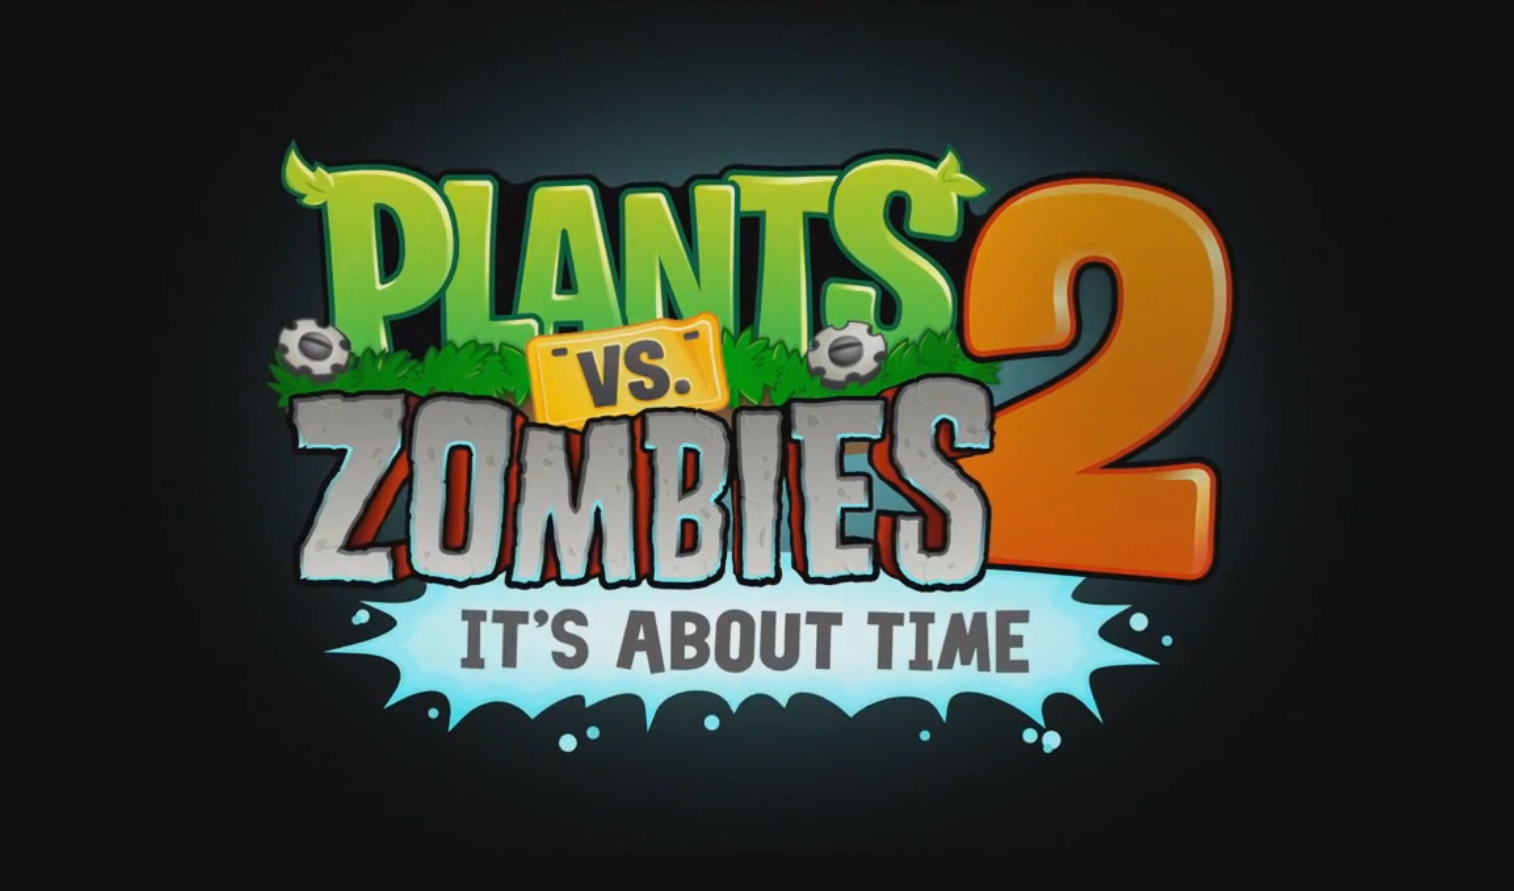 Plants vs Zombies 2 - iOS (iPhone, iPod touch, iPad)